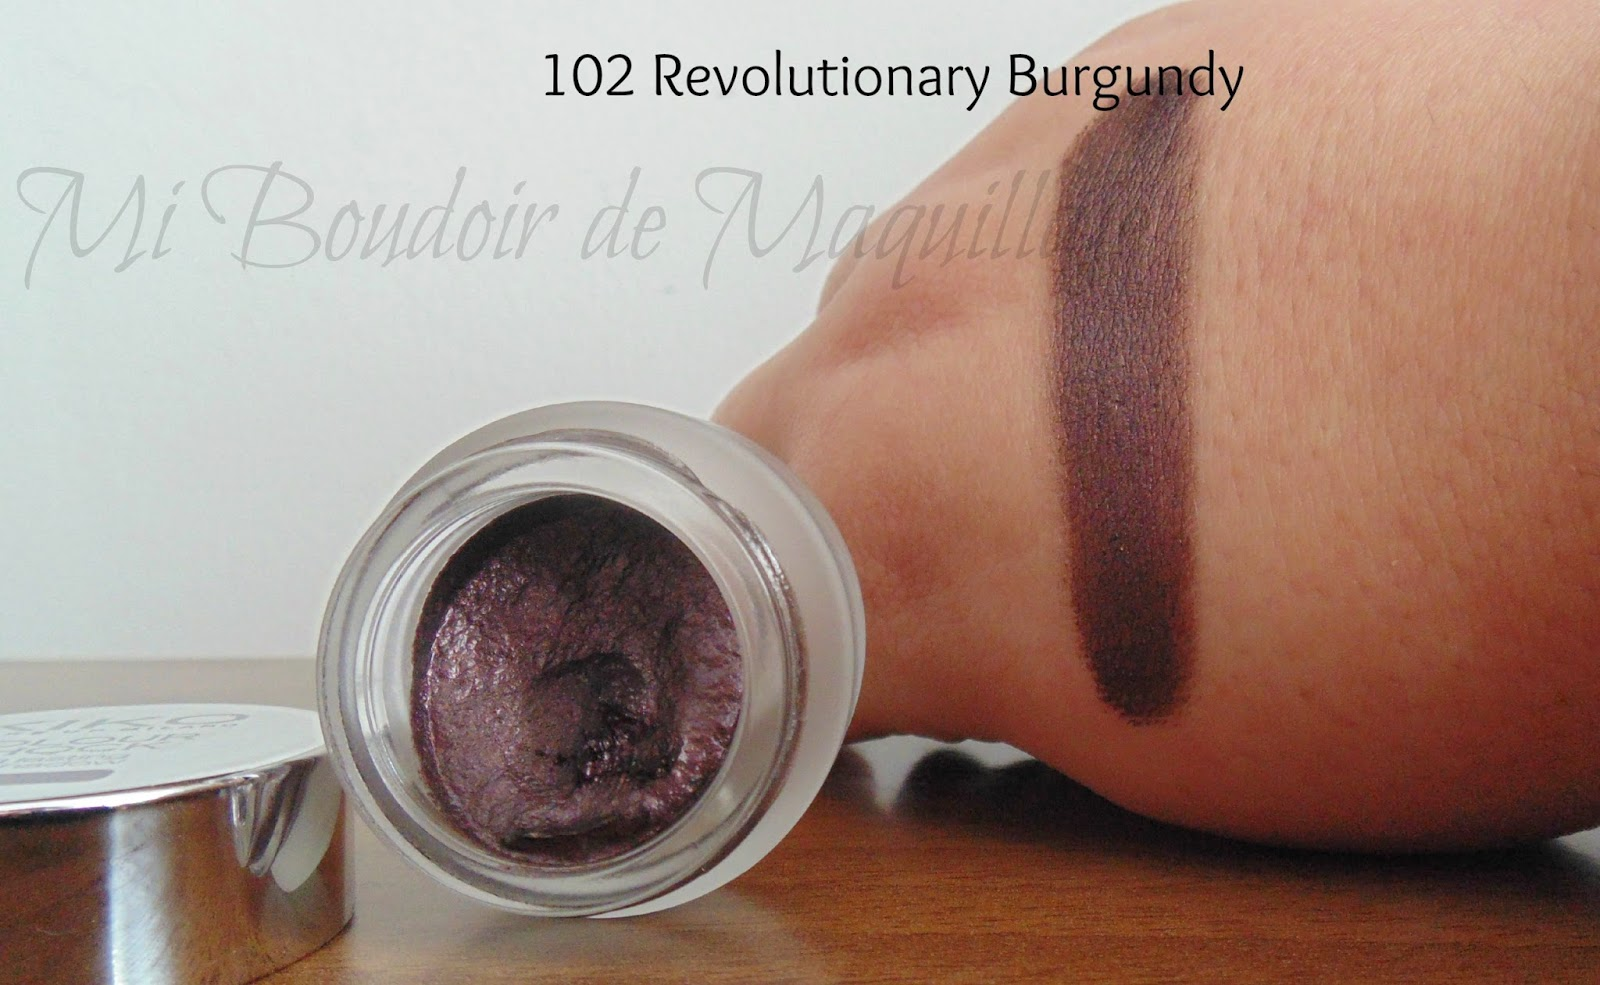 102 Revolutionary Burgundy sombra en gel Kiko